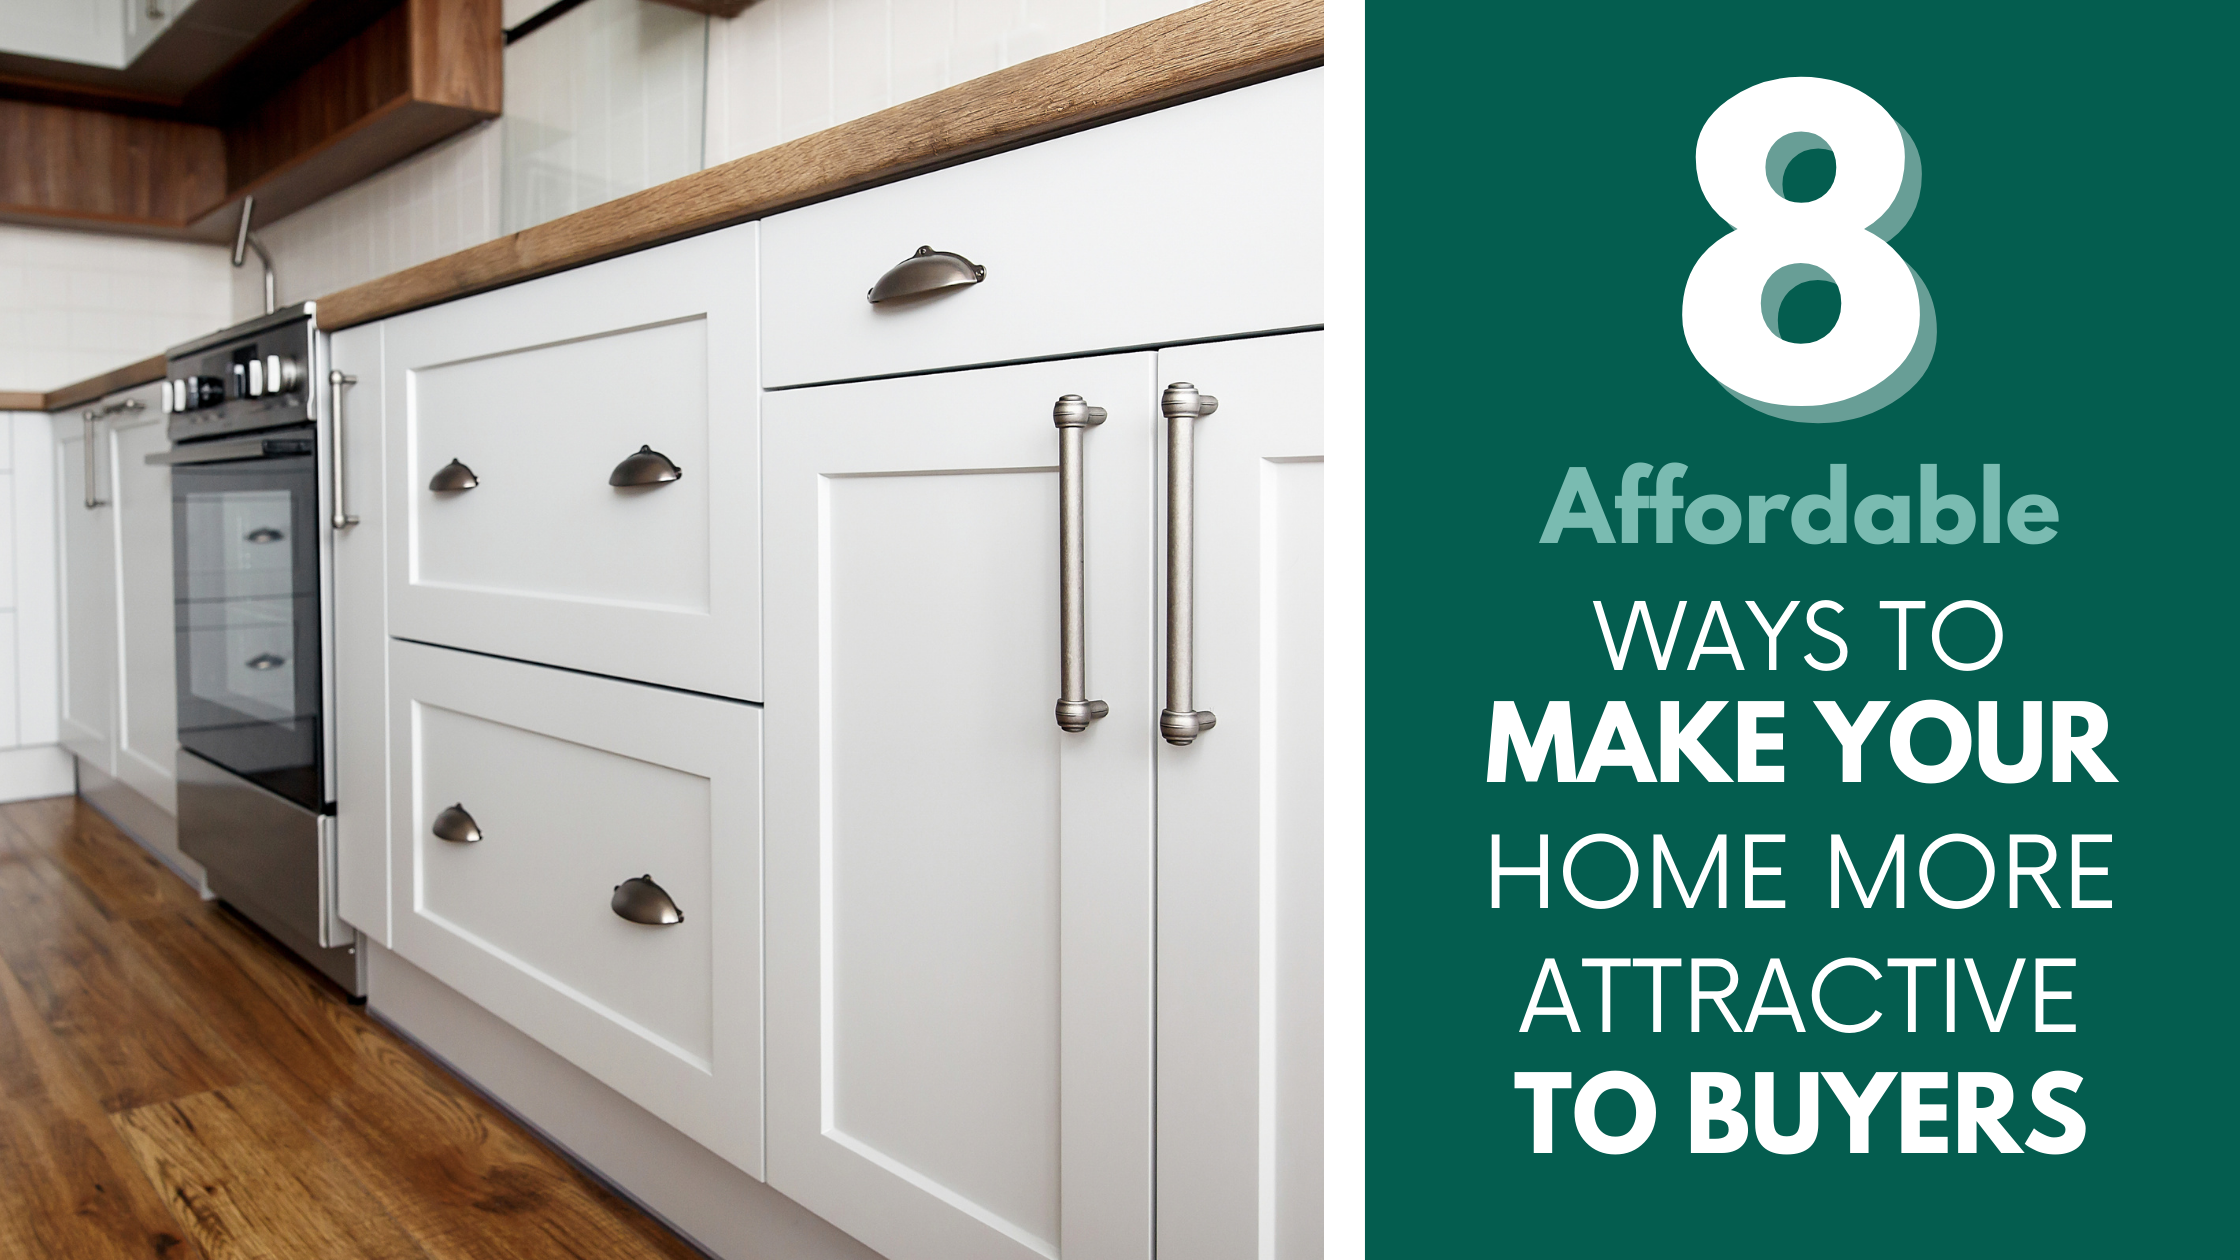 Real Estate Blog - Affordable Ways to Make Your Home More Attractive to Buyers